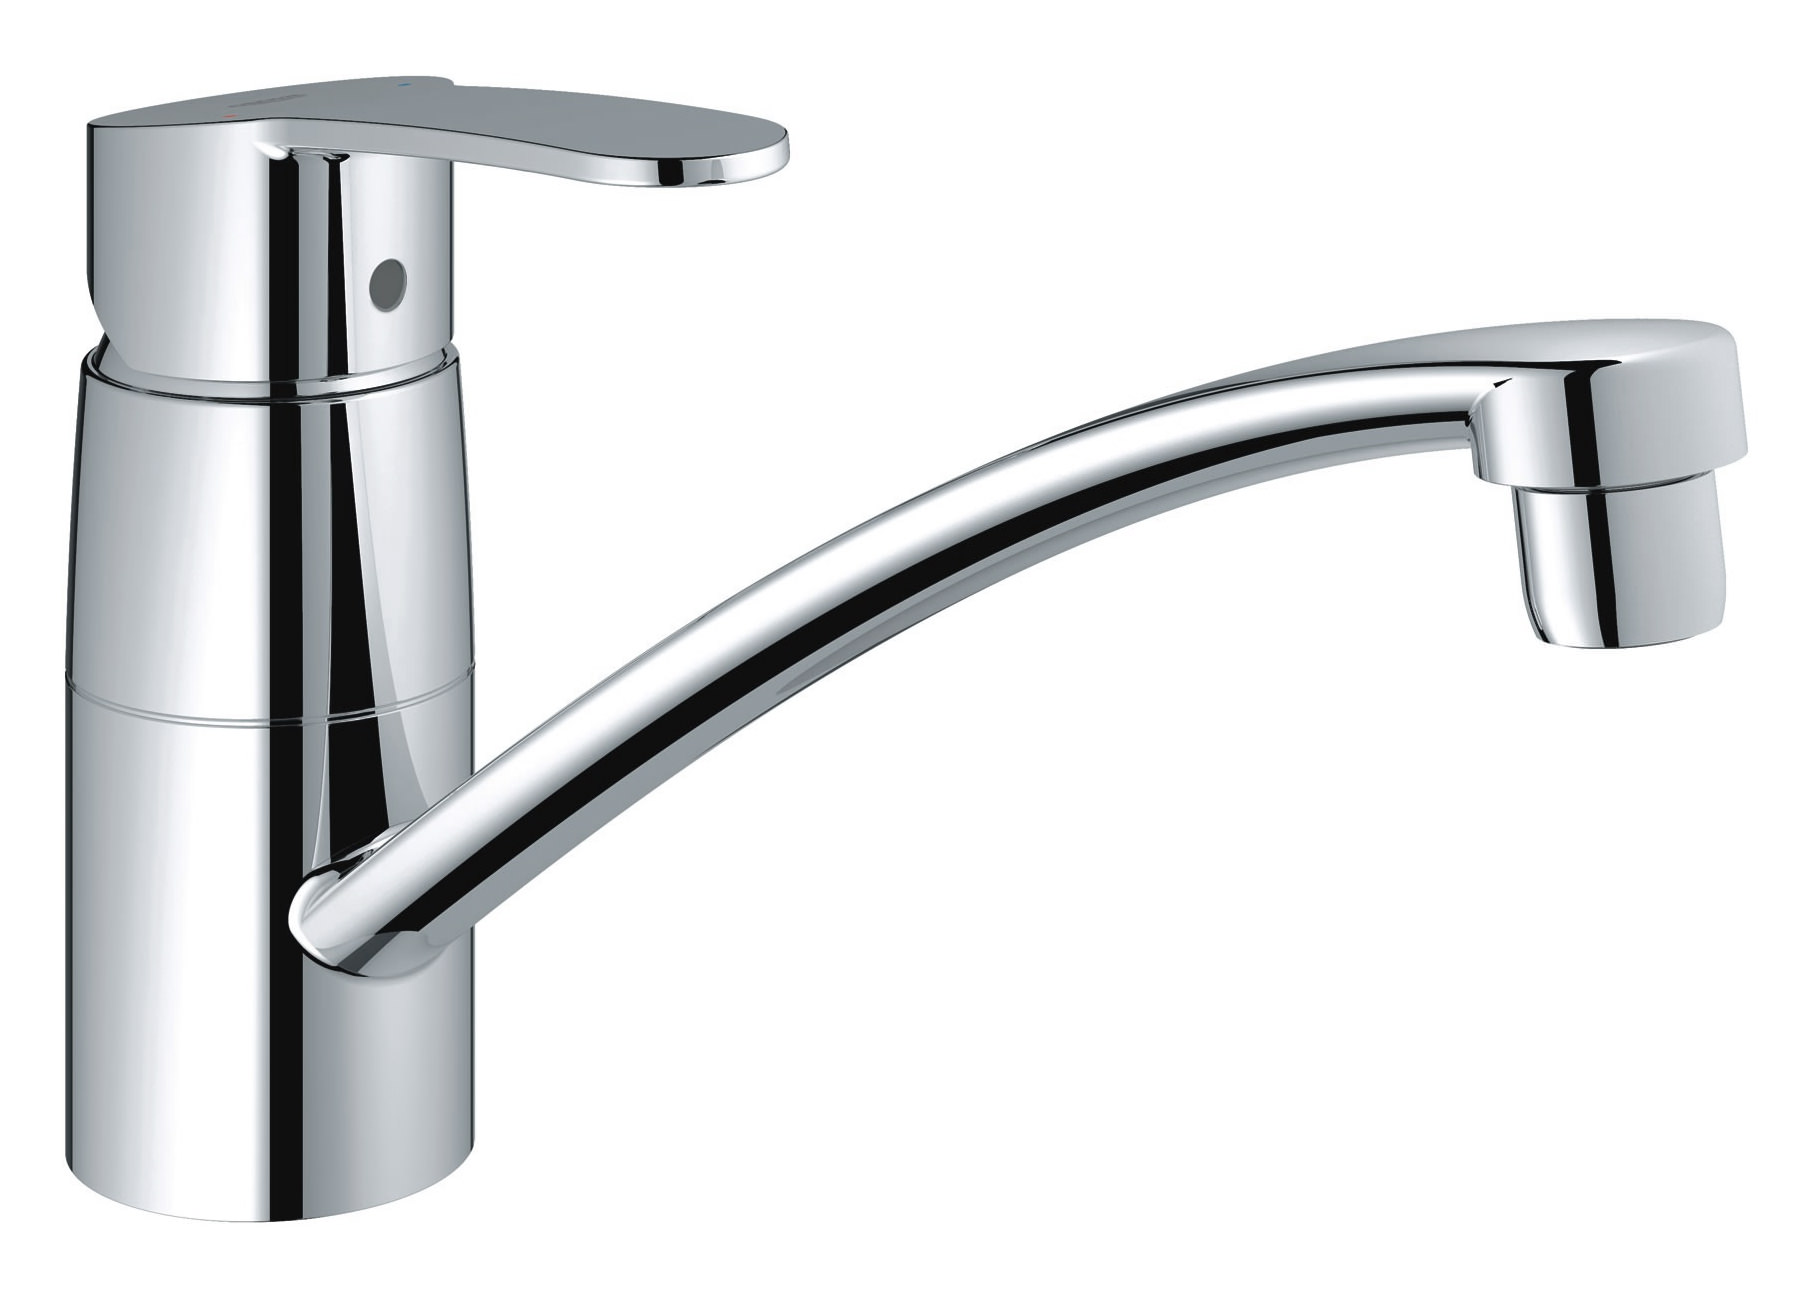 grohe eurostyle cosmopolitan monobloc sink mixer tap 33977 002. Black Bedroom Furniture Sets. Home Design Ideas